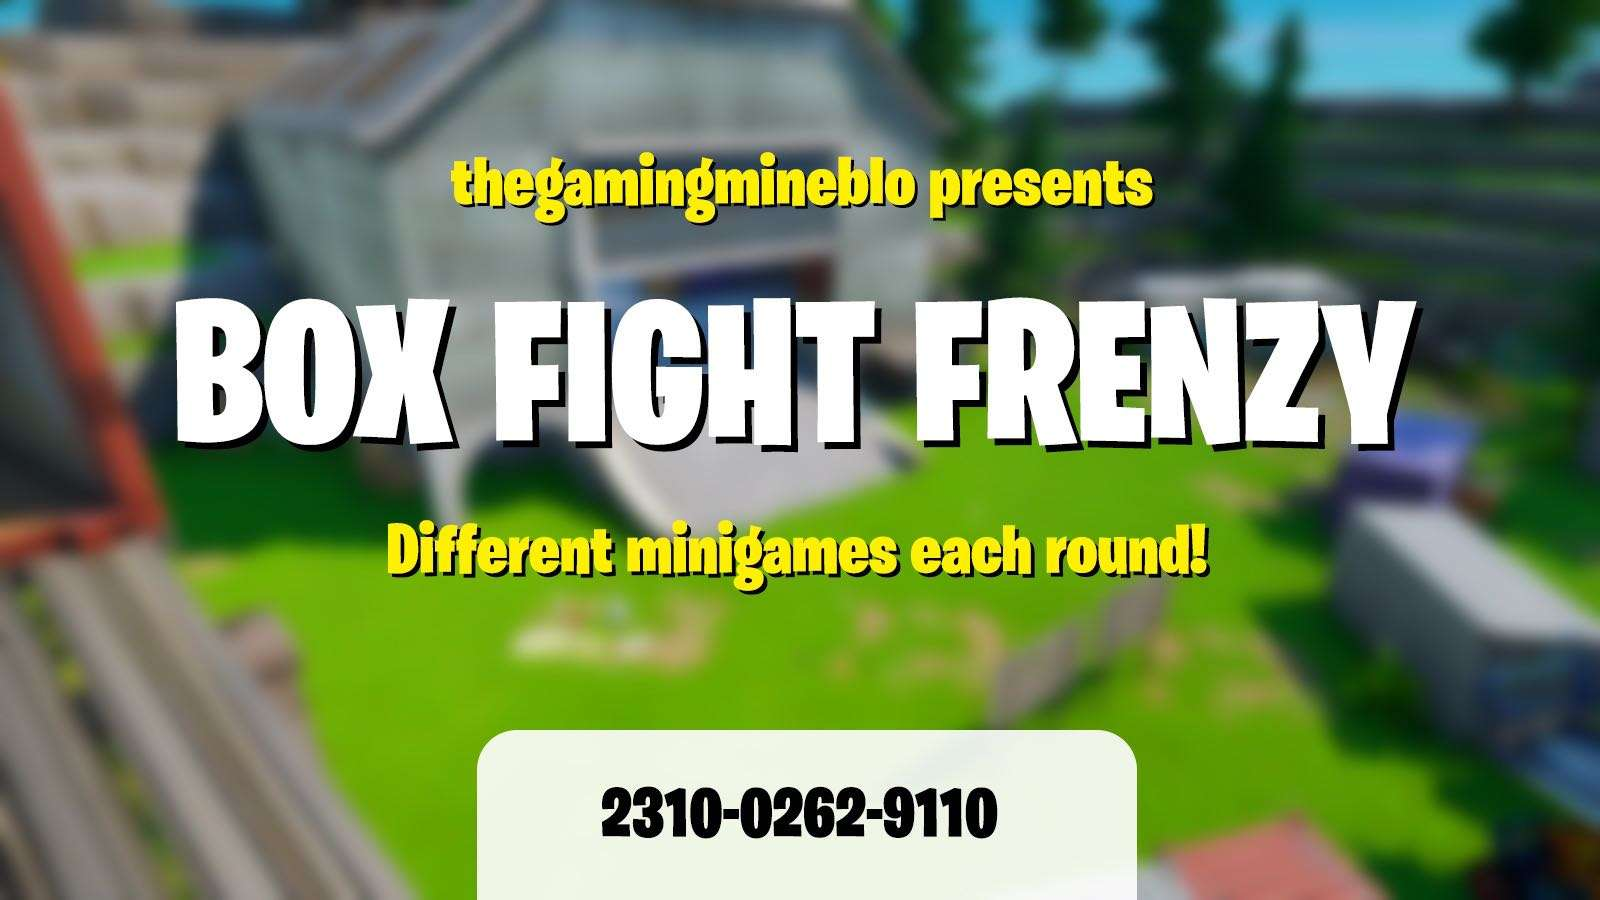 BOX FIGHT FRENZY